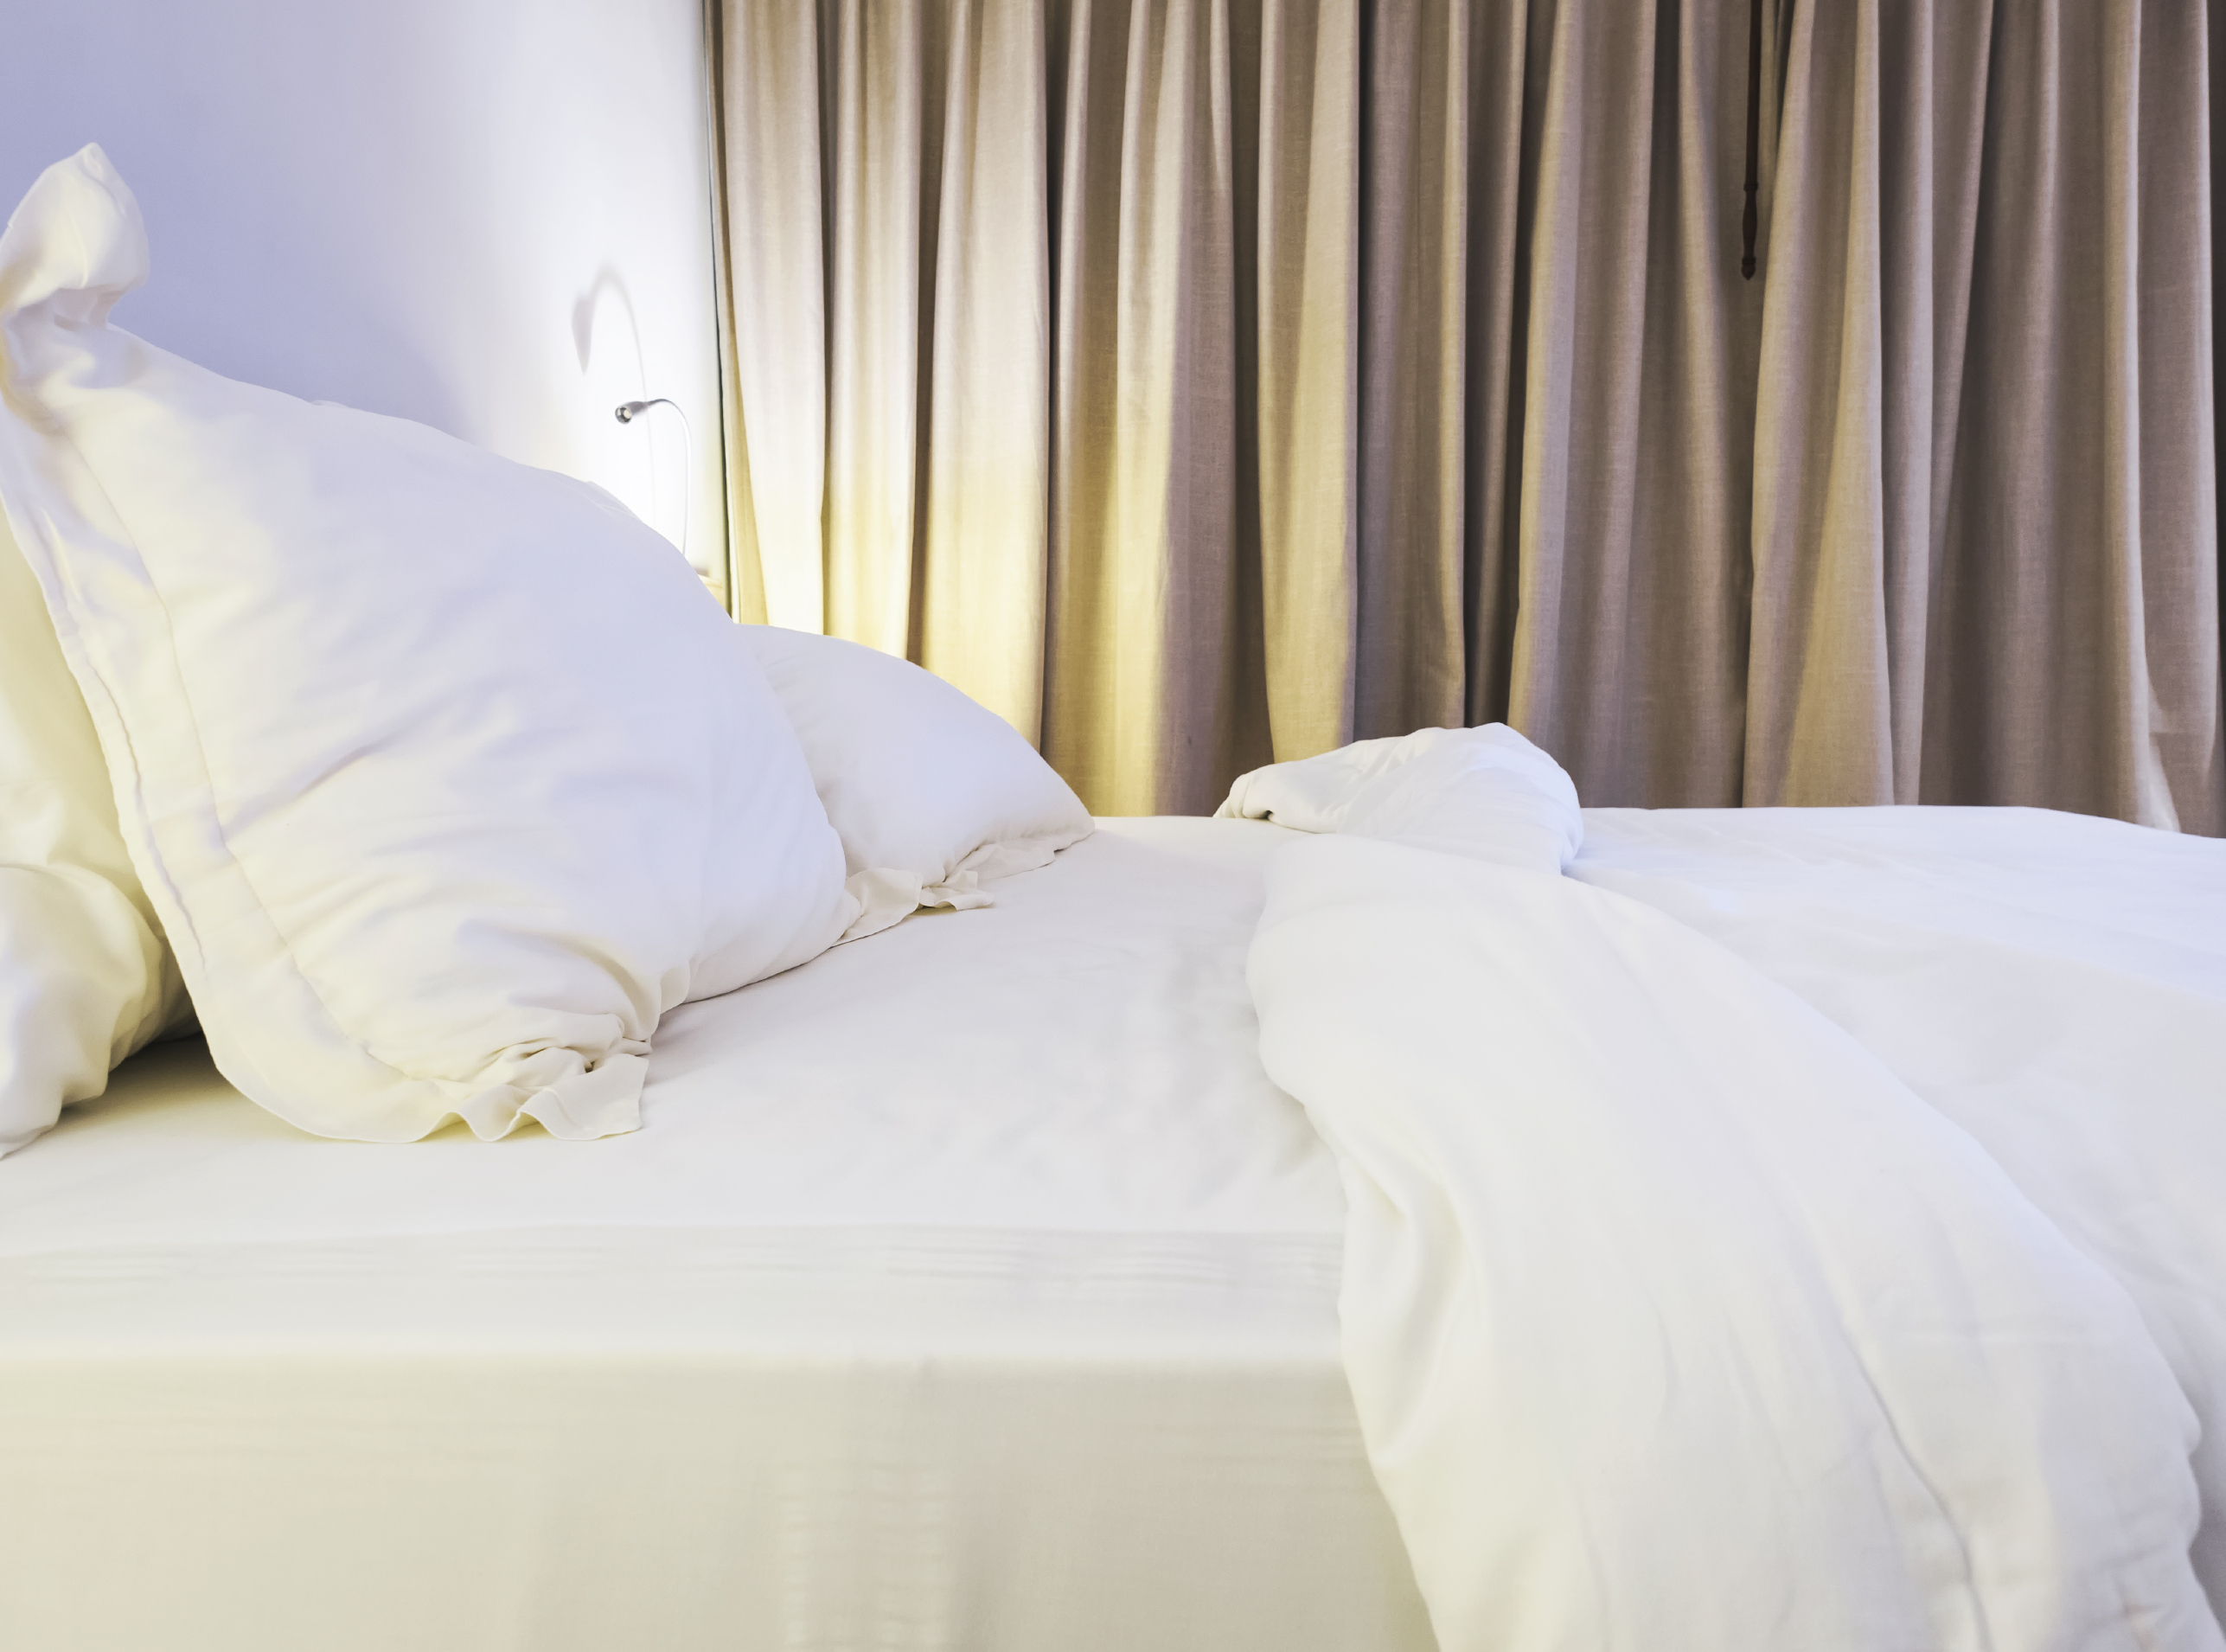 Make sure you replace your mattress and clean your bed regularly to avoid allergens in your home.